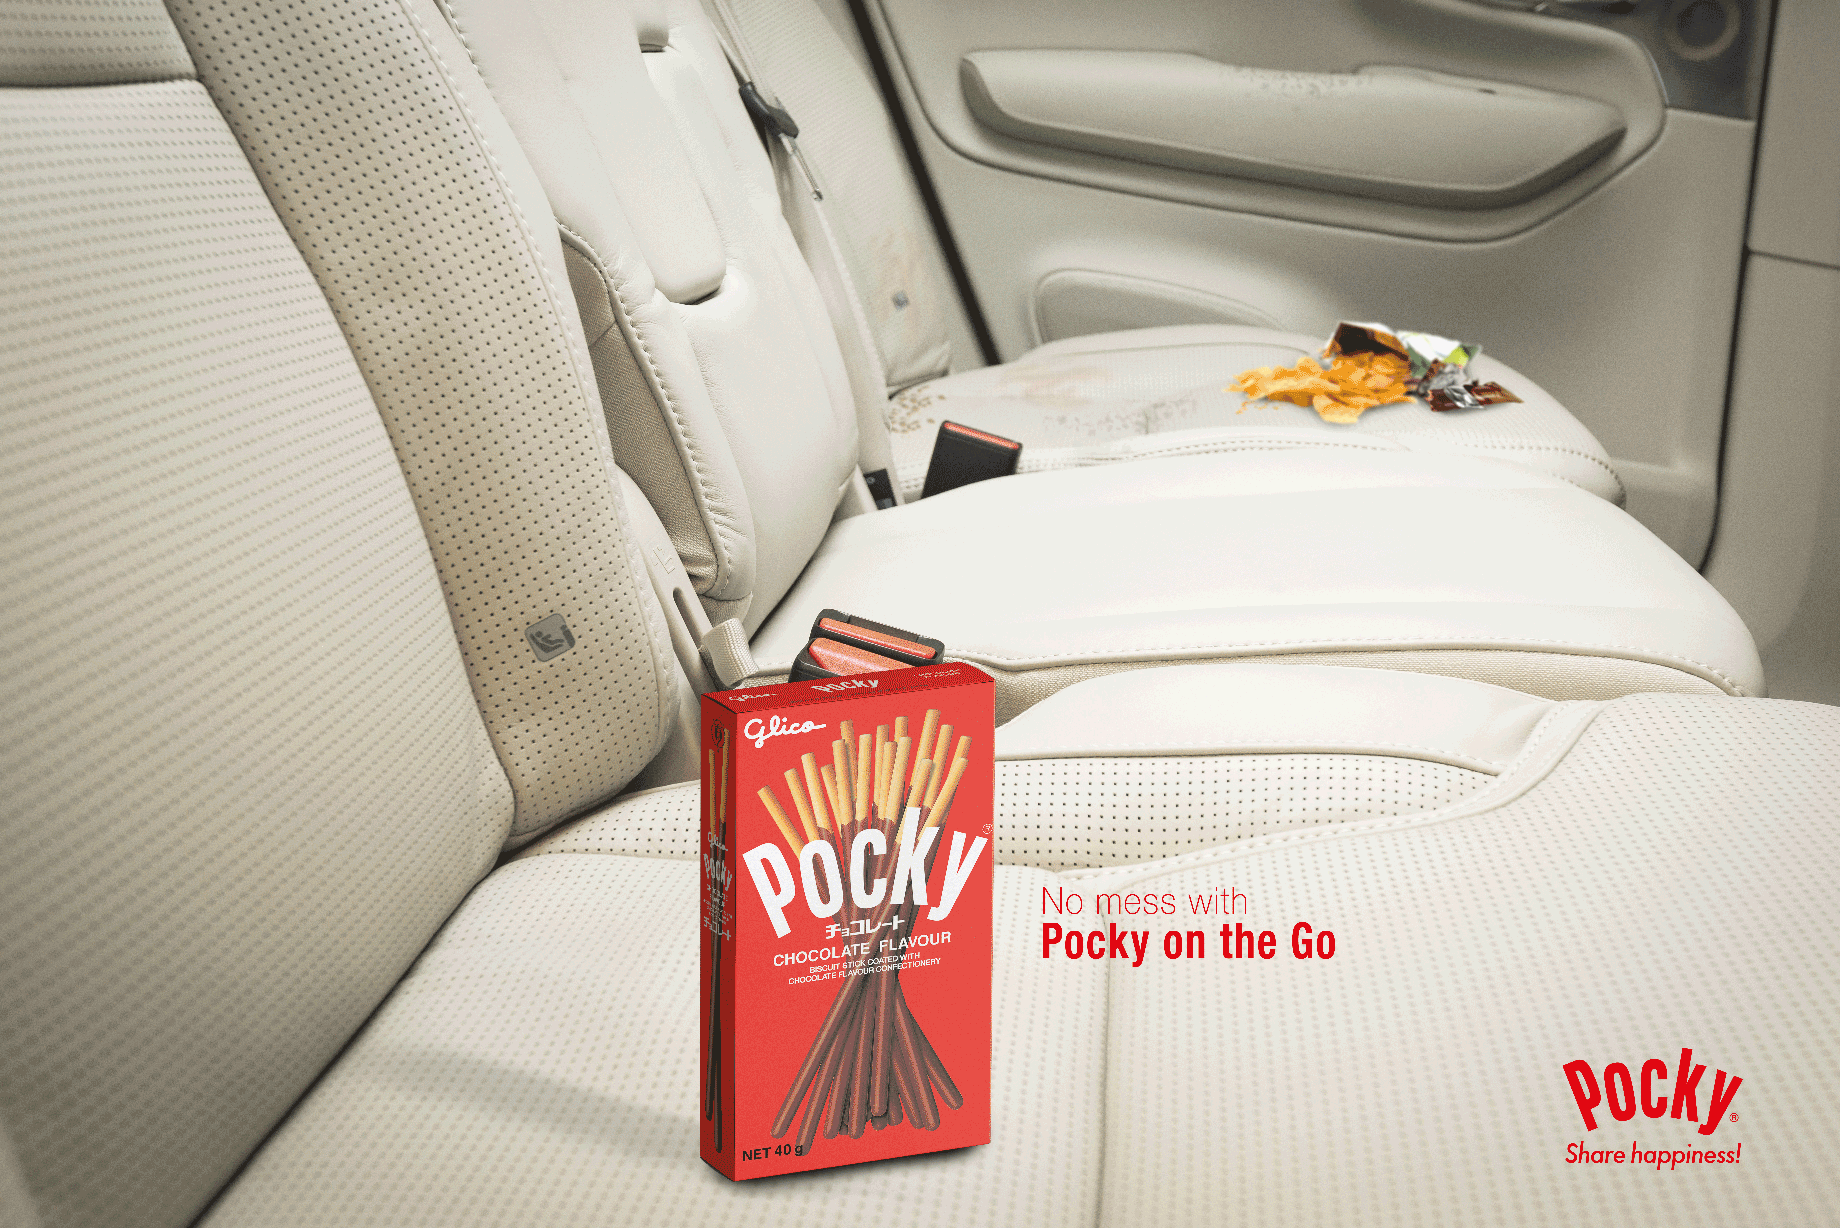 Pocky on the go